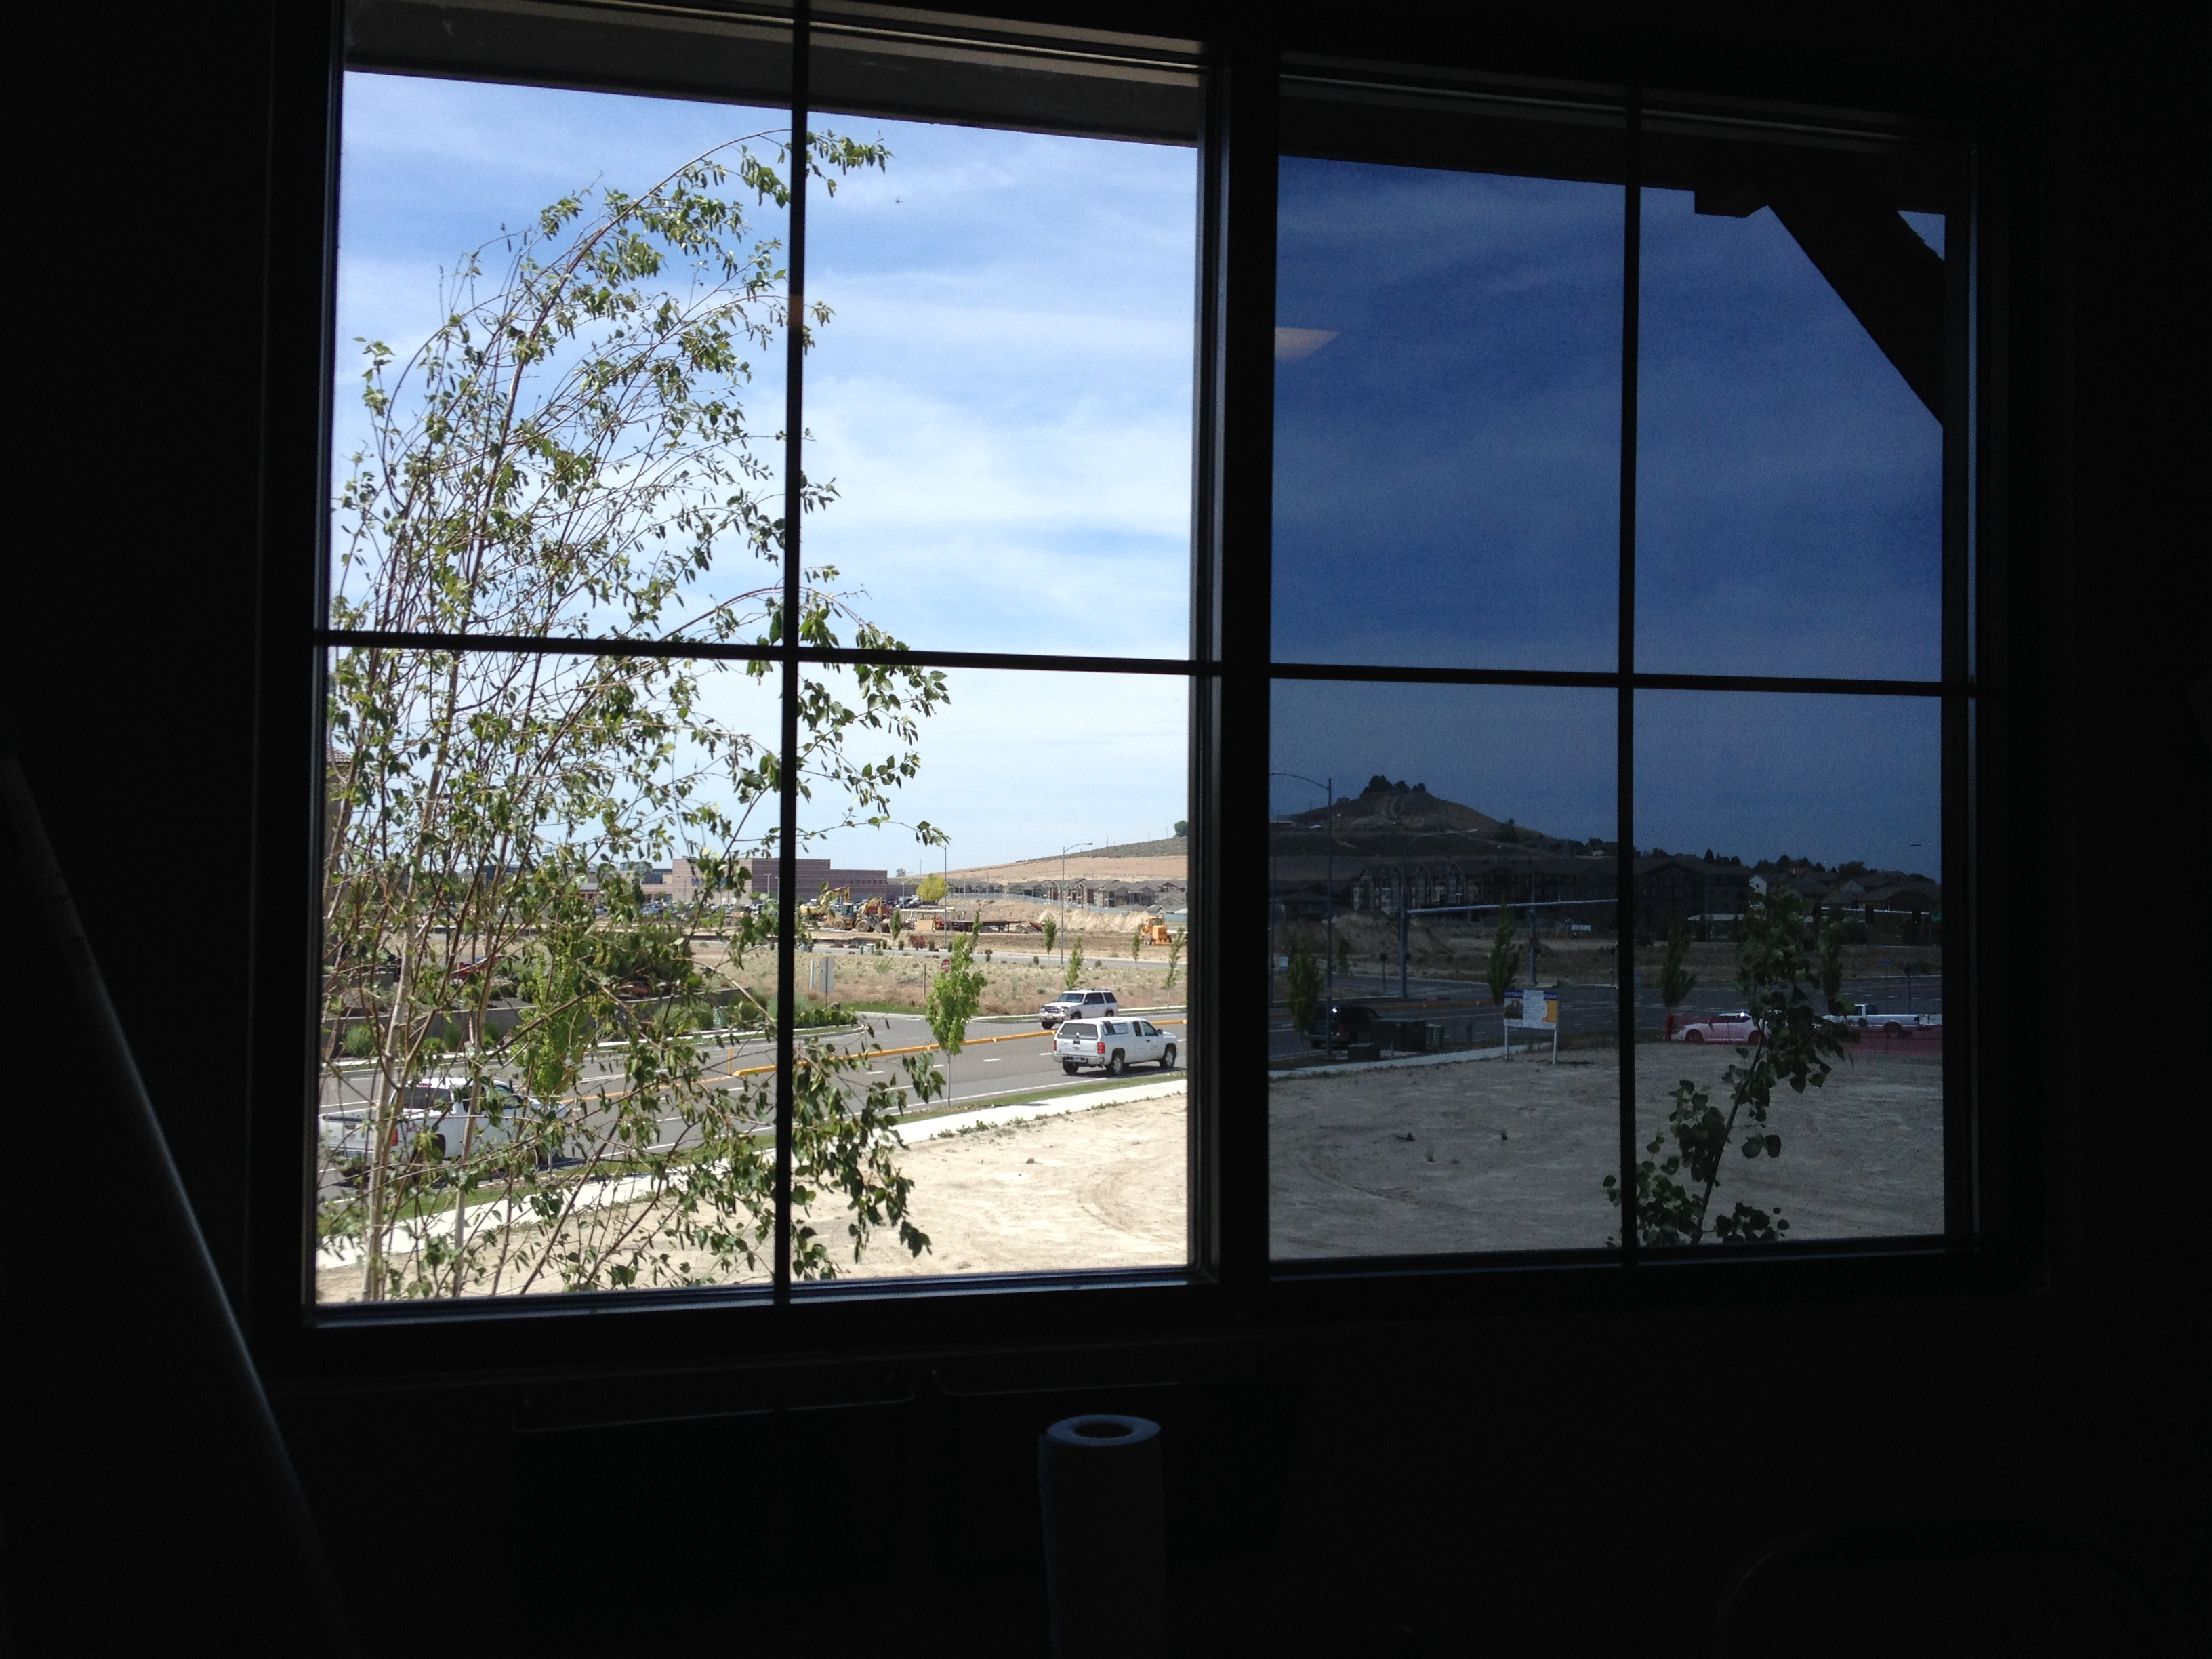 A quality window tint kennewick washington wa for Quality windows